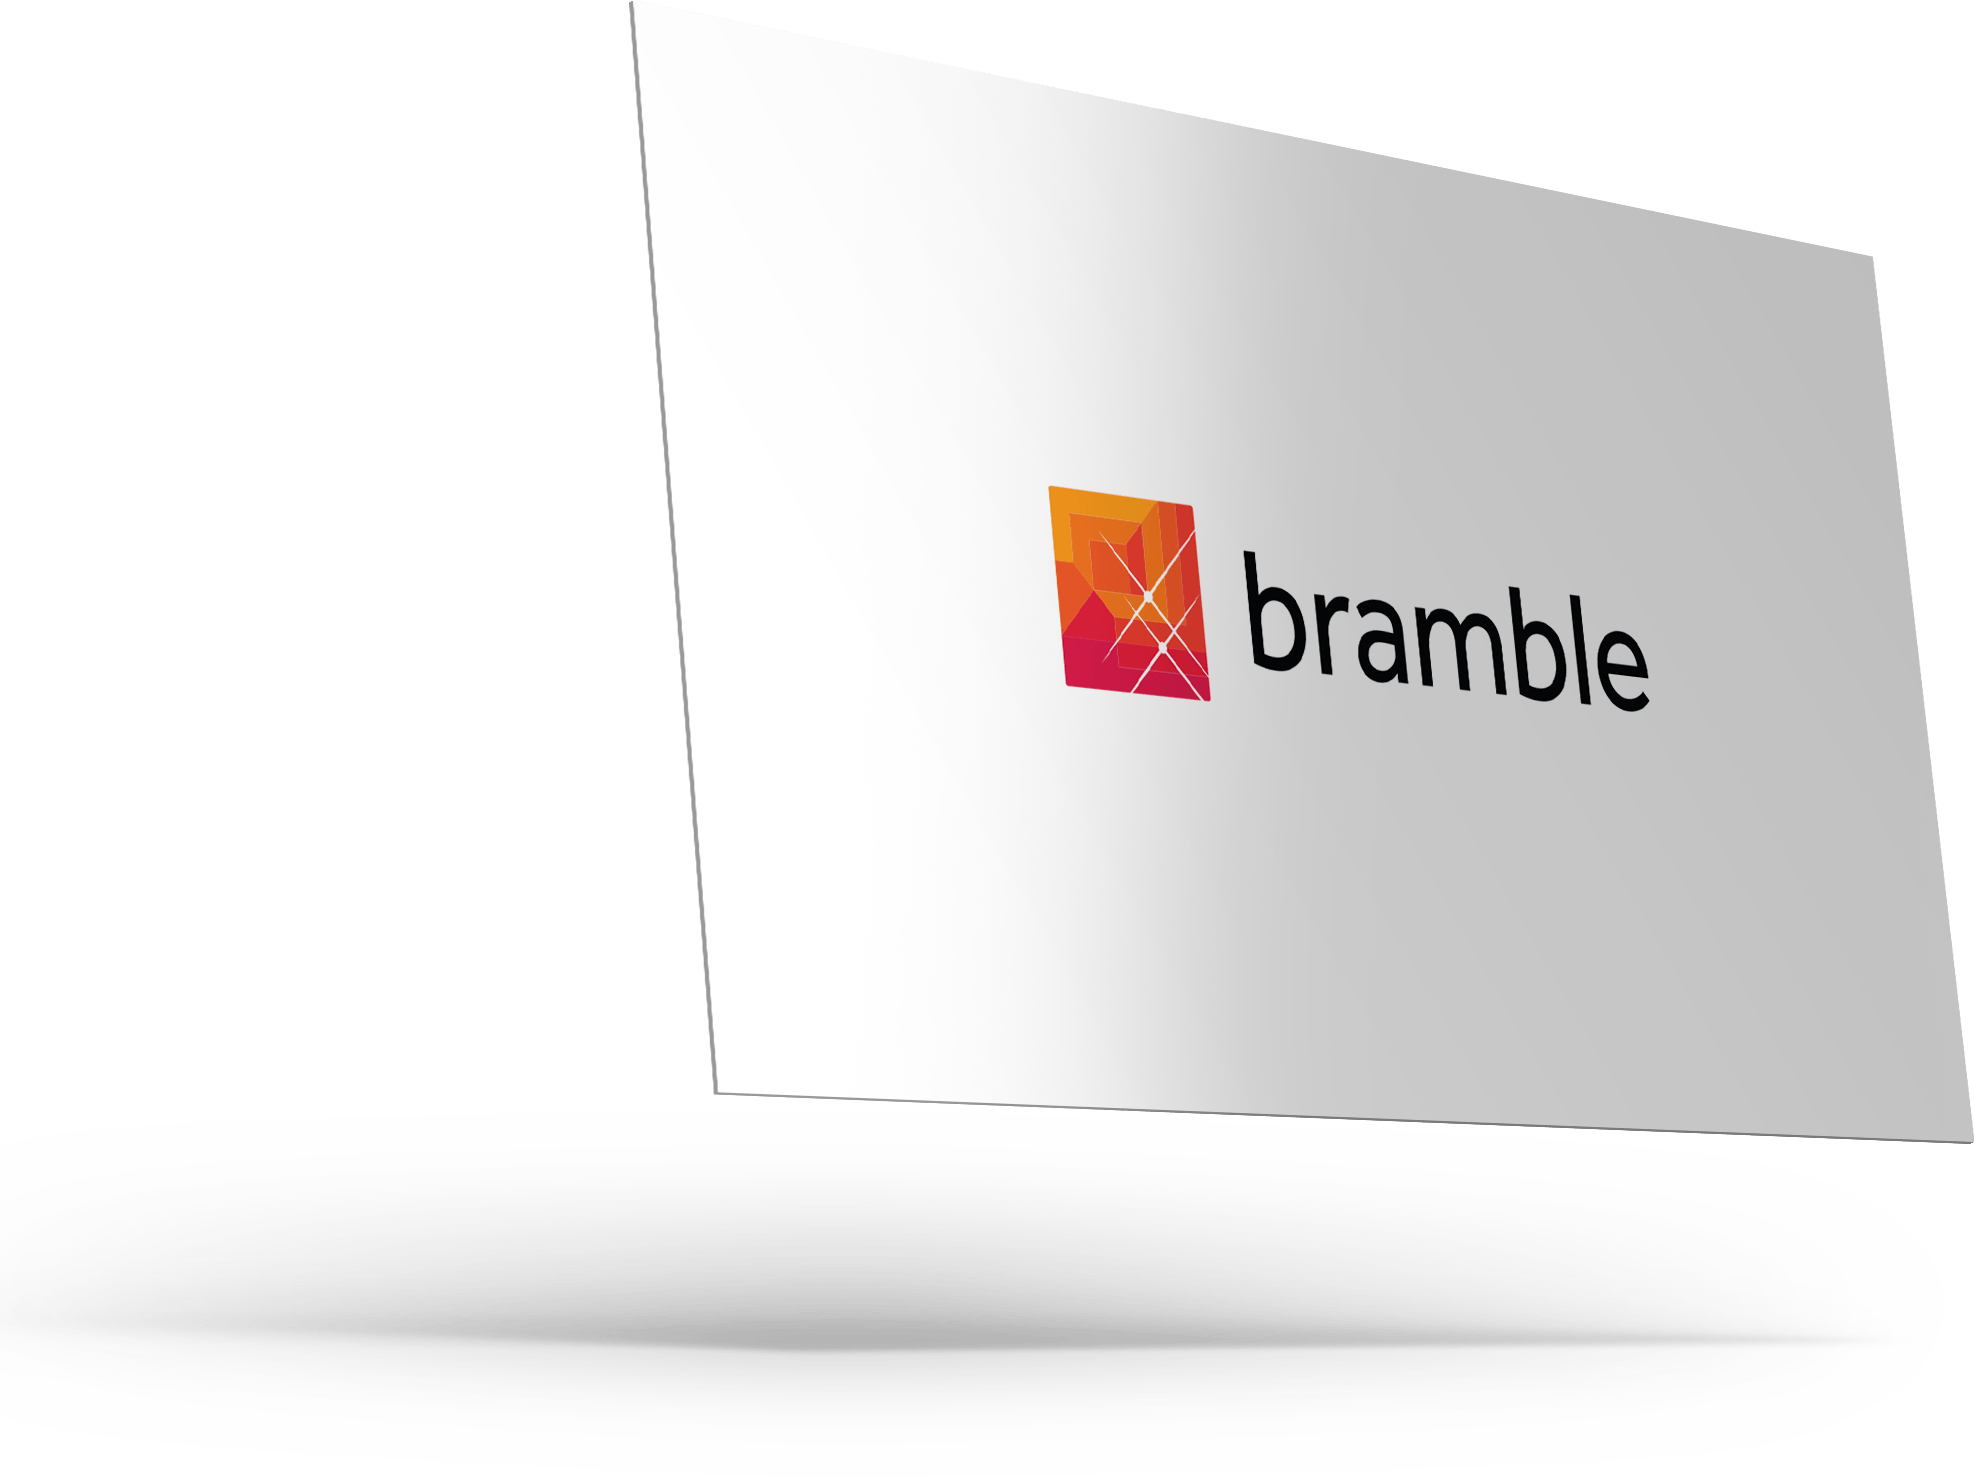 Bramble slide